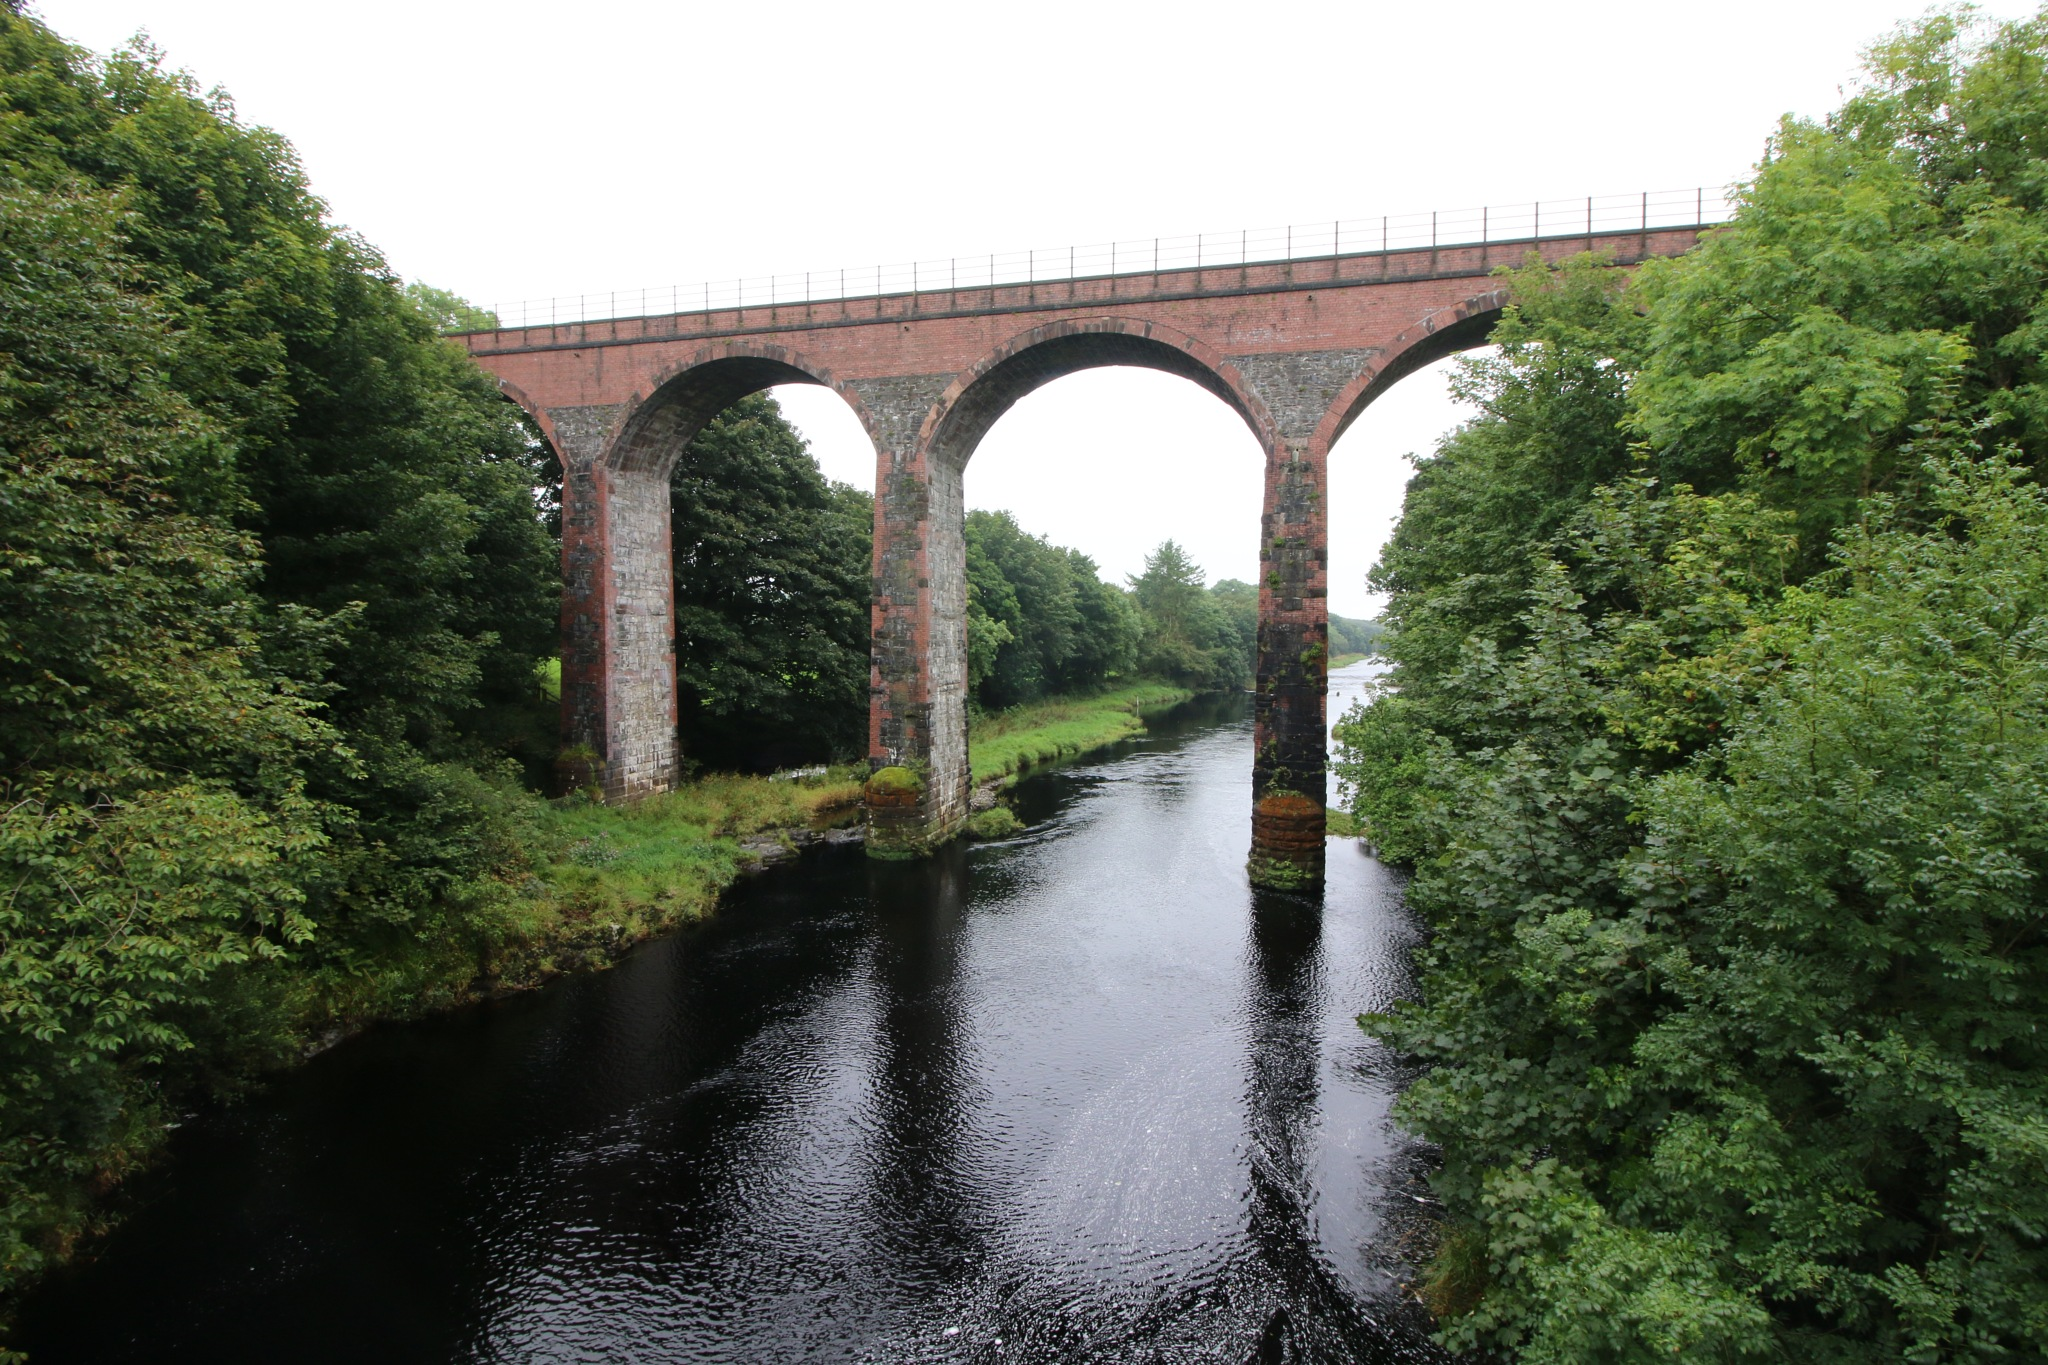 Glenluce viaduct by Kevhyde